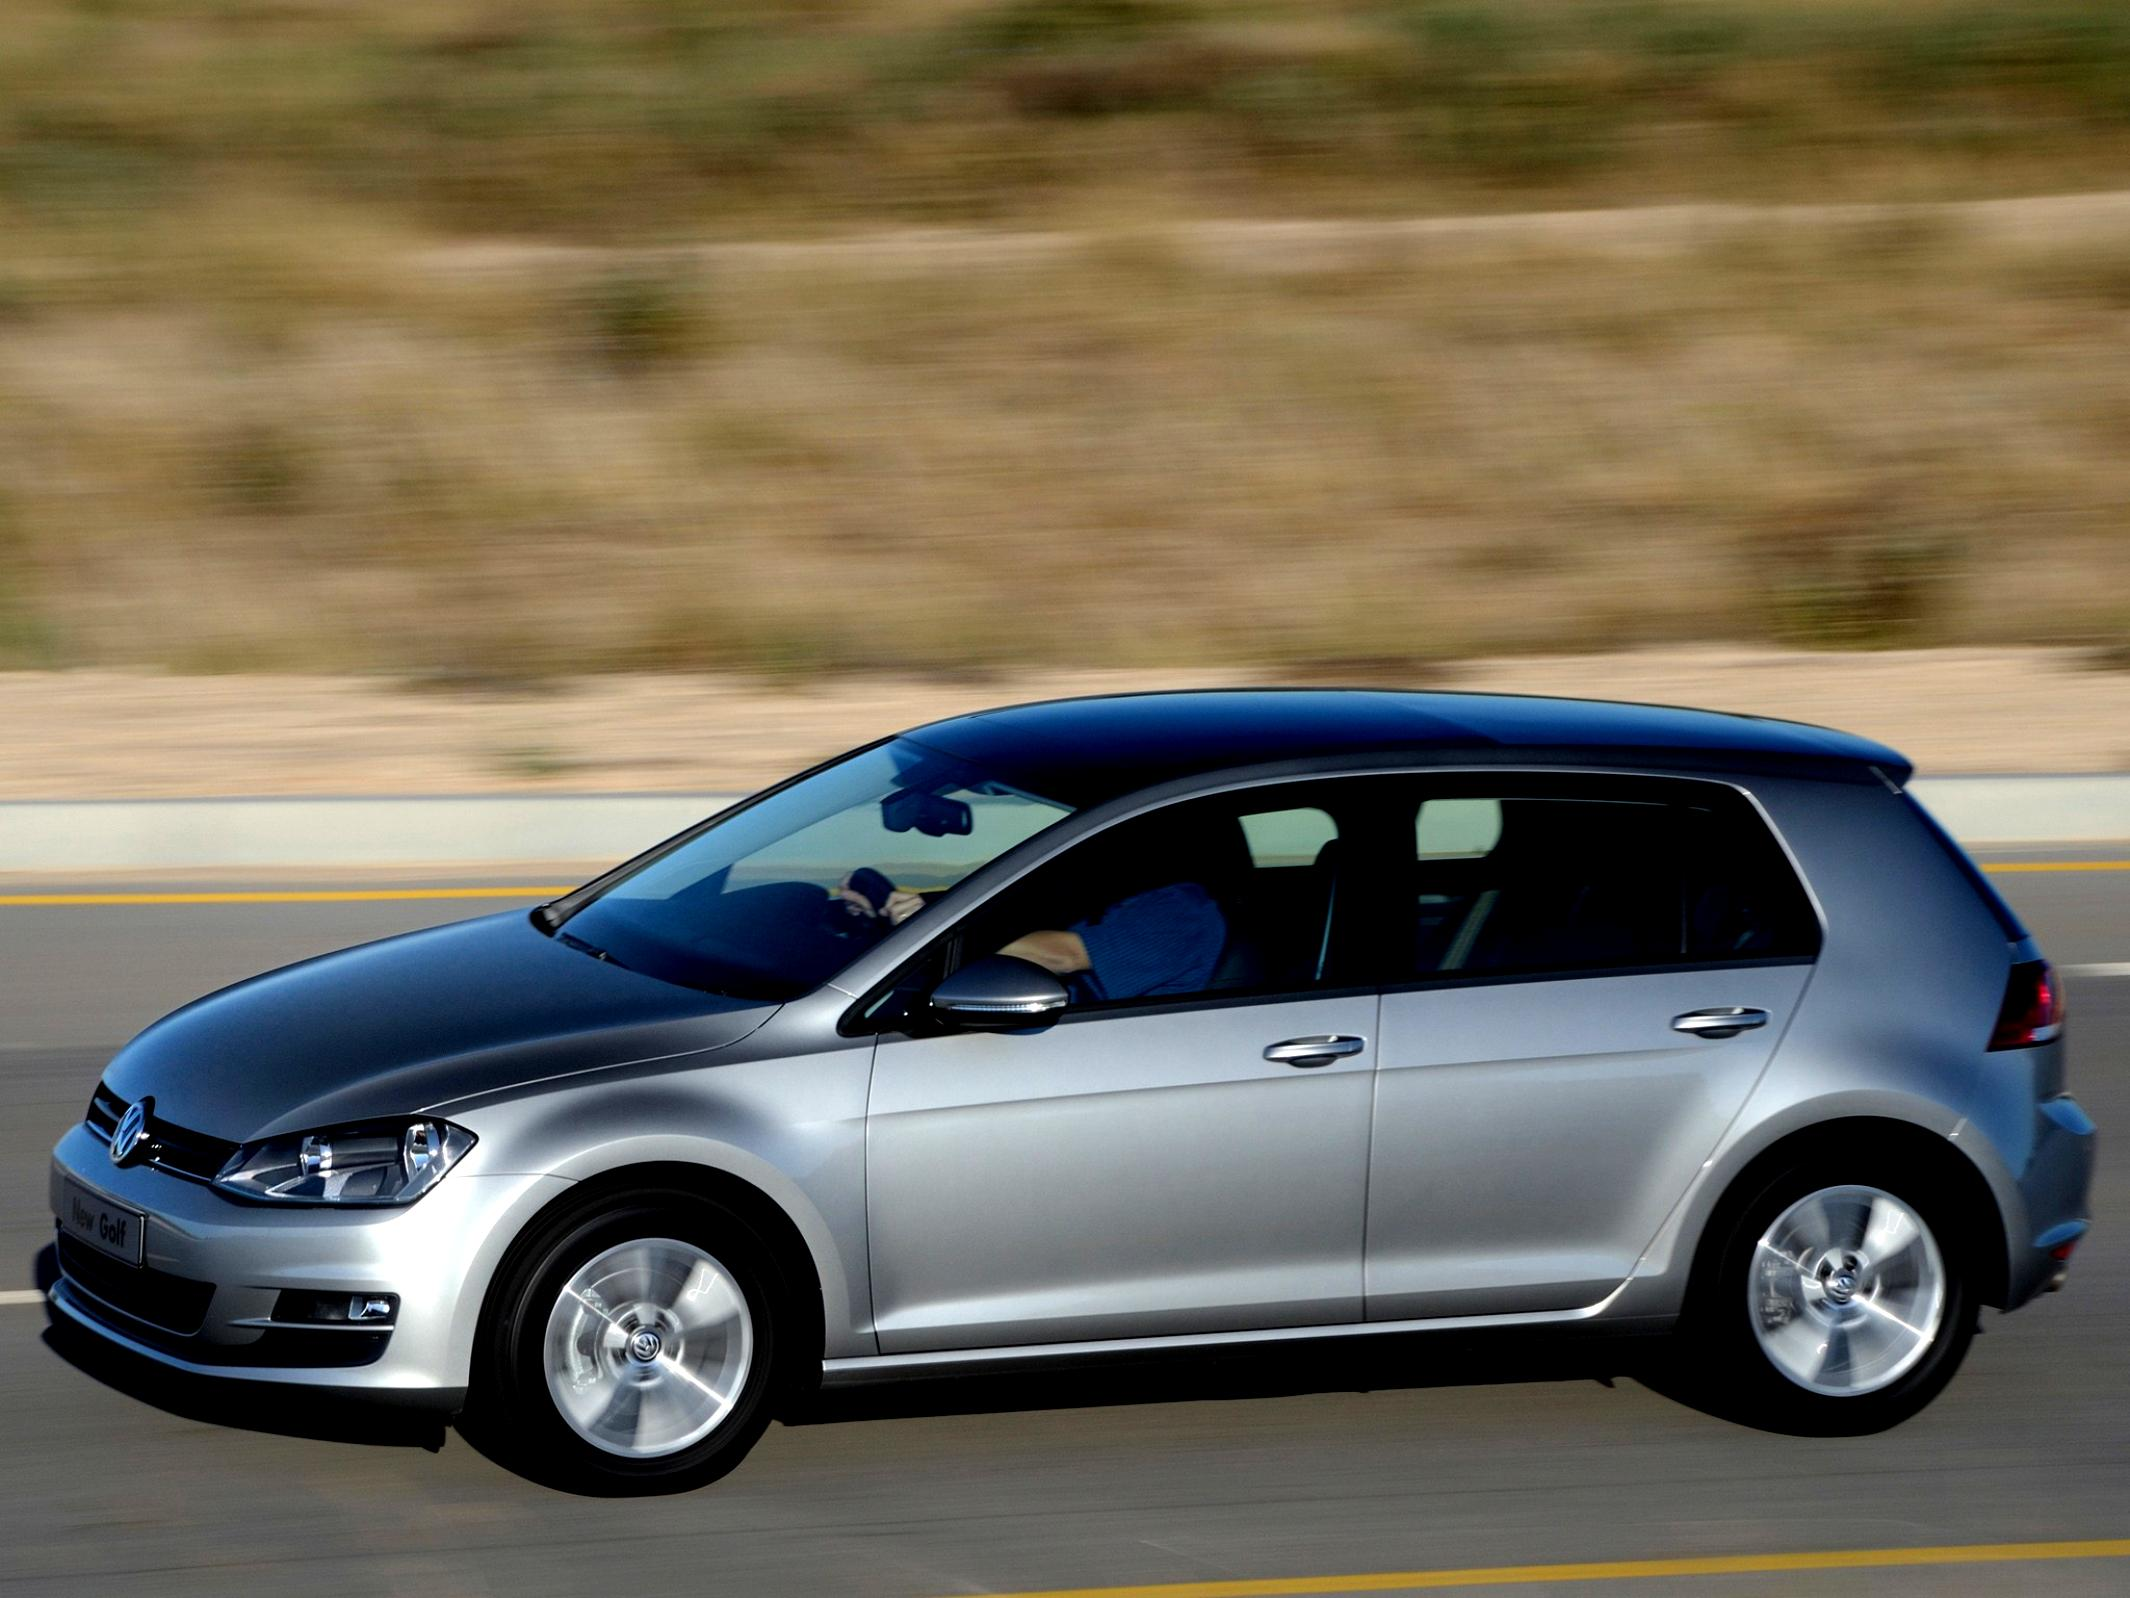 Volkswagen Golf VII 5 Doors 2012 #80